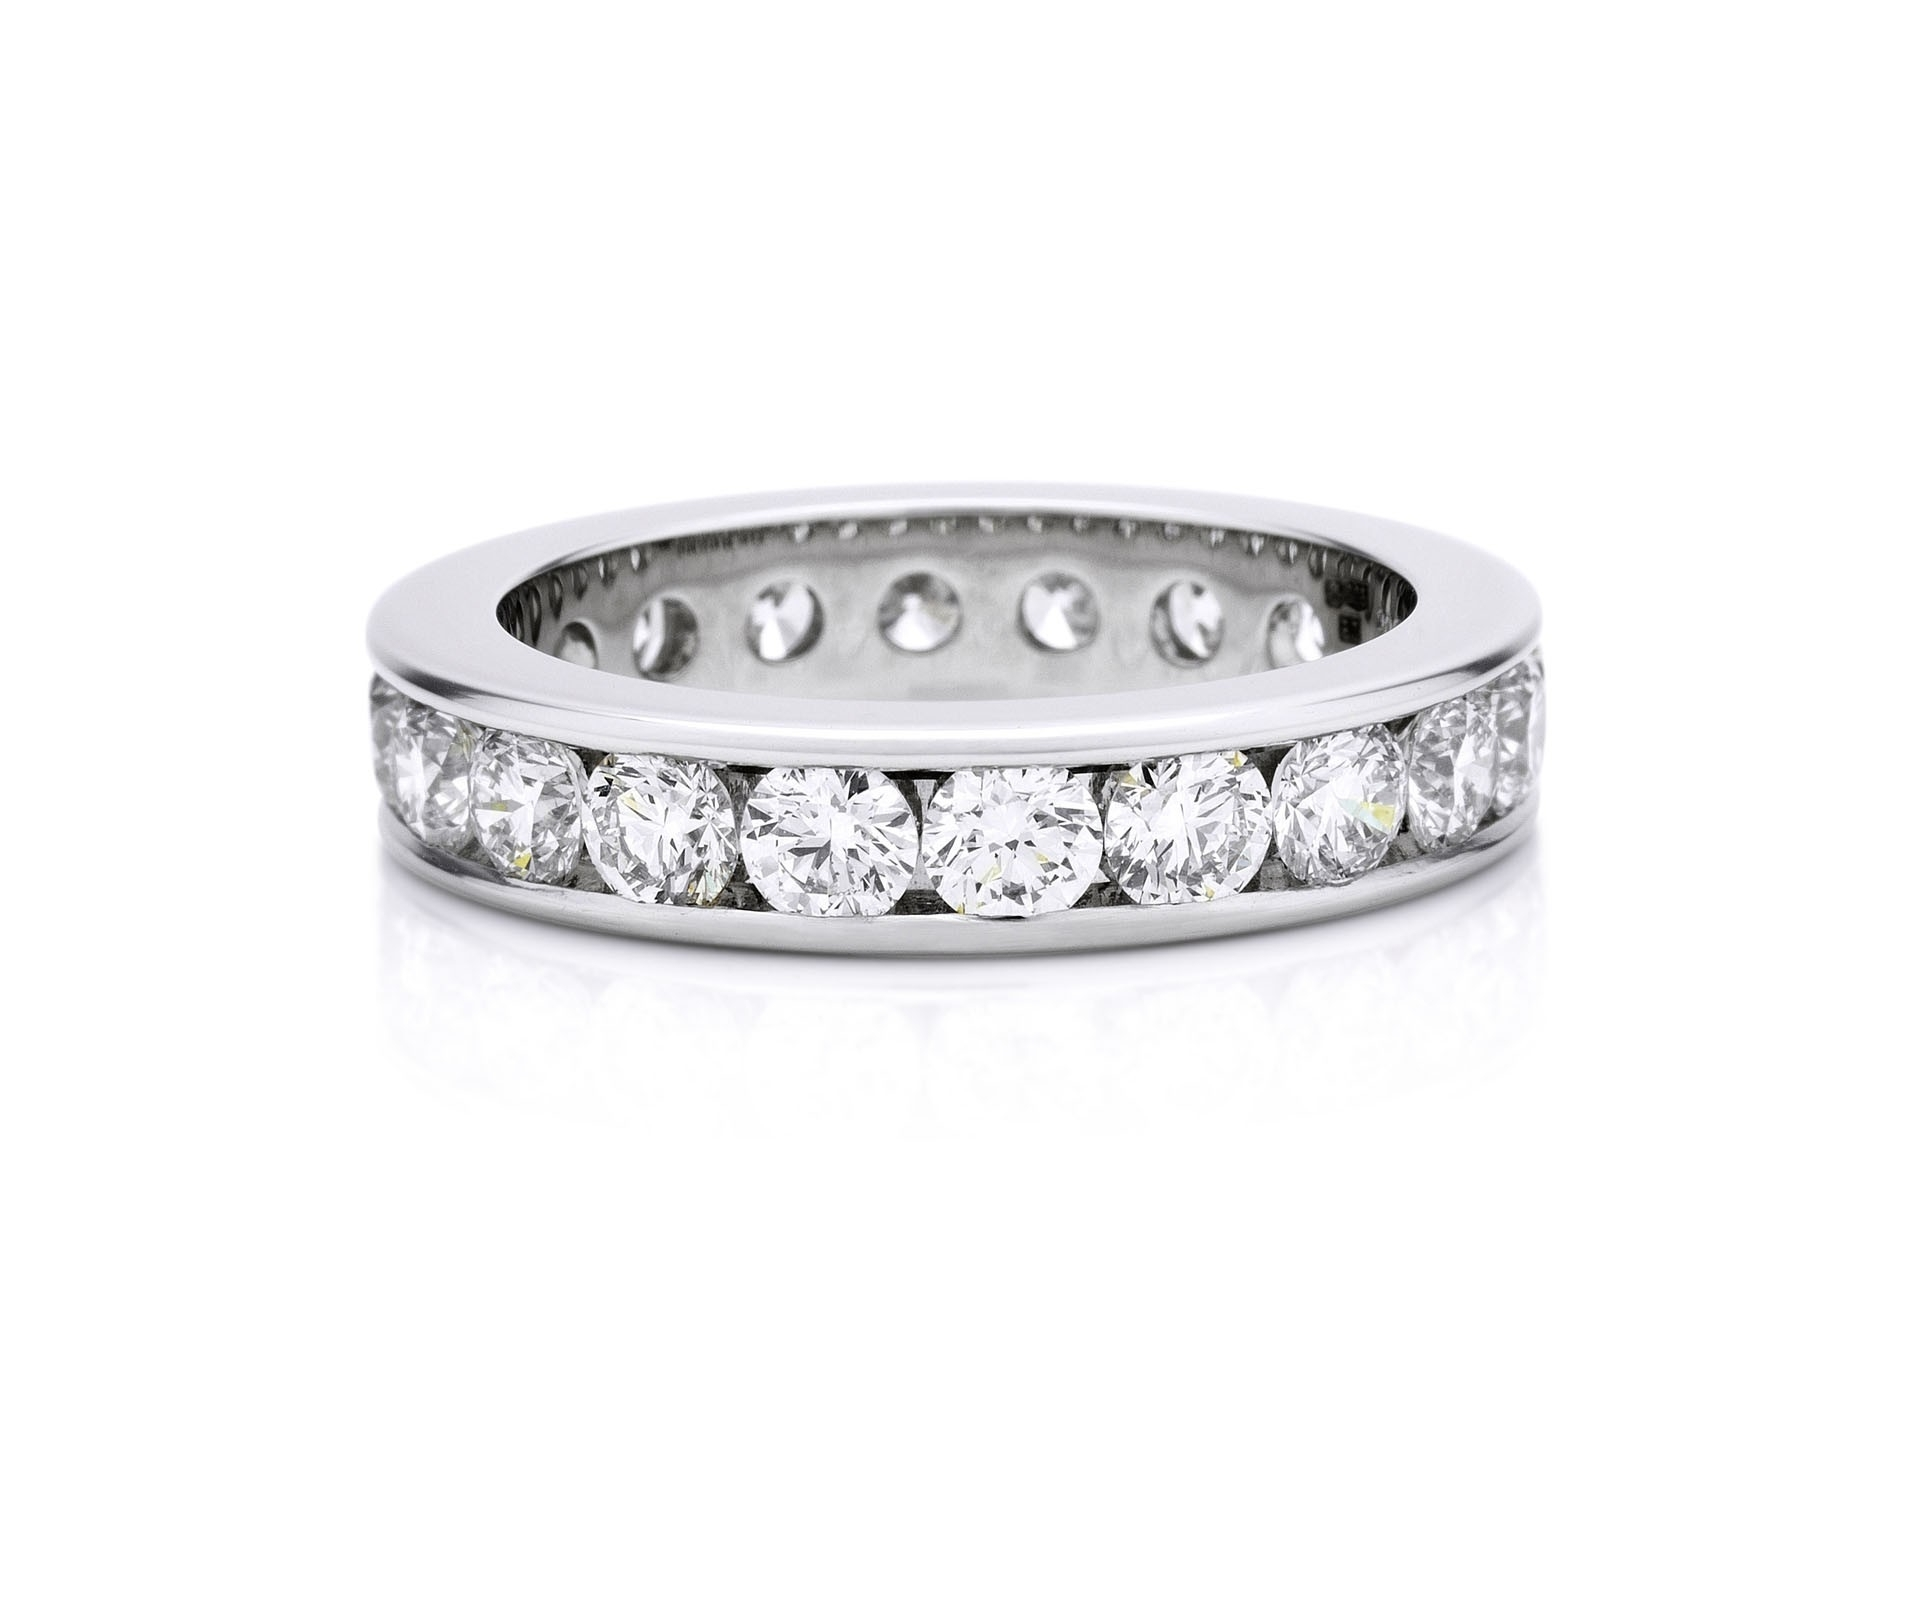 Channel Set Platinum 4mm Eternity Ring | De Beers Regarding 2017 Diamond Channel Set Anniversary Bands (View 12 of 15)